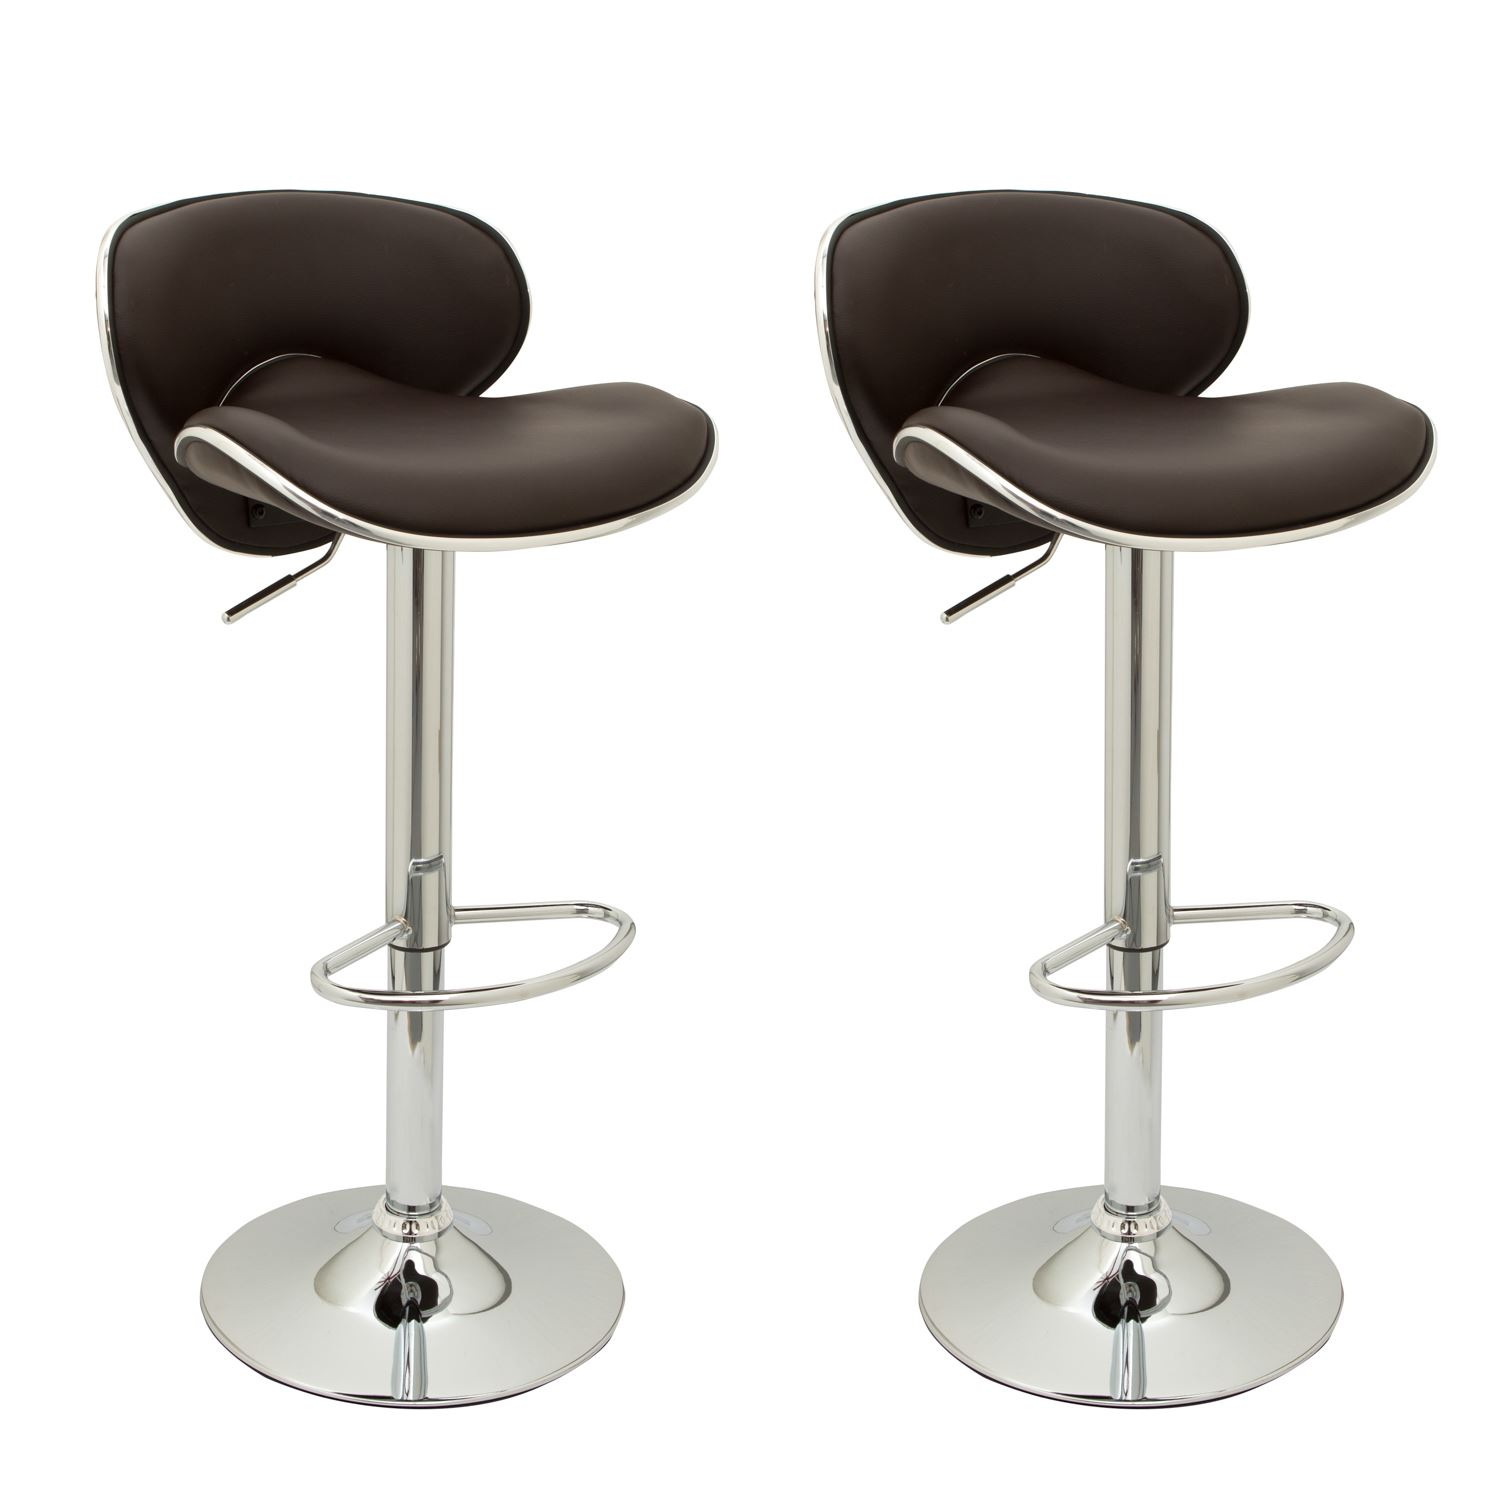 2 Designer Faux Leather Kitchen Breakfast Bar Stools Swivel Gas Lift Chairs Ebay